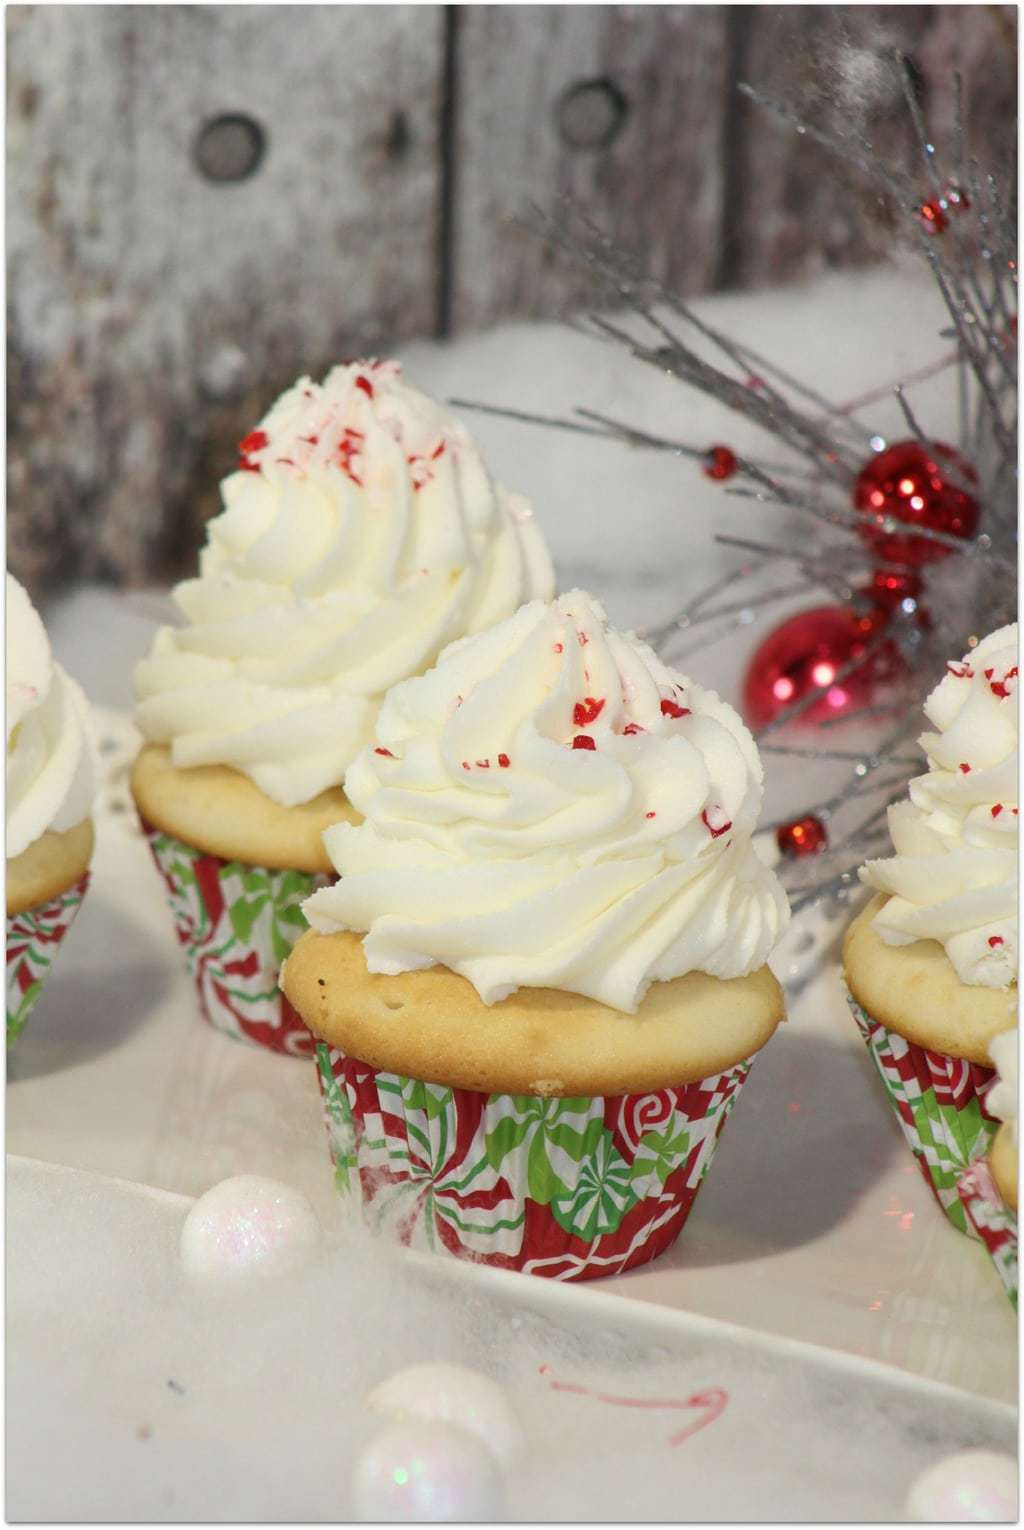 Who wants a Christmas cupcake? I've told you before that cupcakes are one of my favorite desserts for parties and celebrations, especially when kids are involved. This is an easy dessert recipe, but the result is just beautiful! As I always say, don't buy cupcakes when you can DIY! Want to be able to produce a beautiful topping of frosting like you see here? My secret is the Wilton Frosting gun! You won't believe how easy it is to produce professional looking desserts!